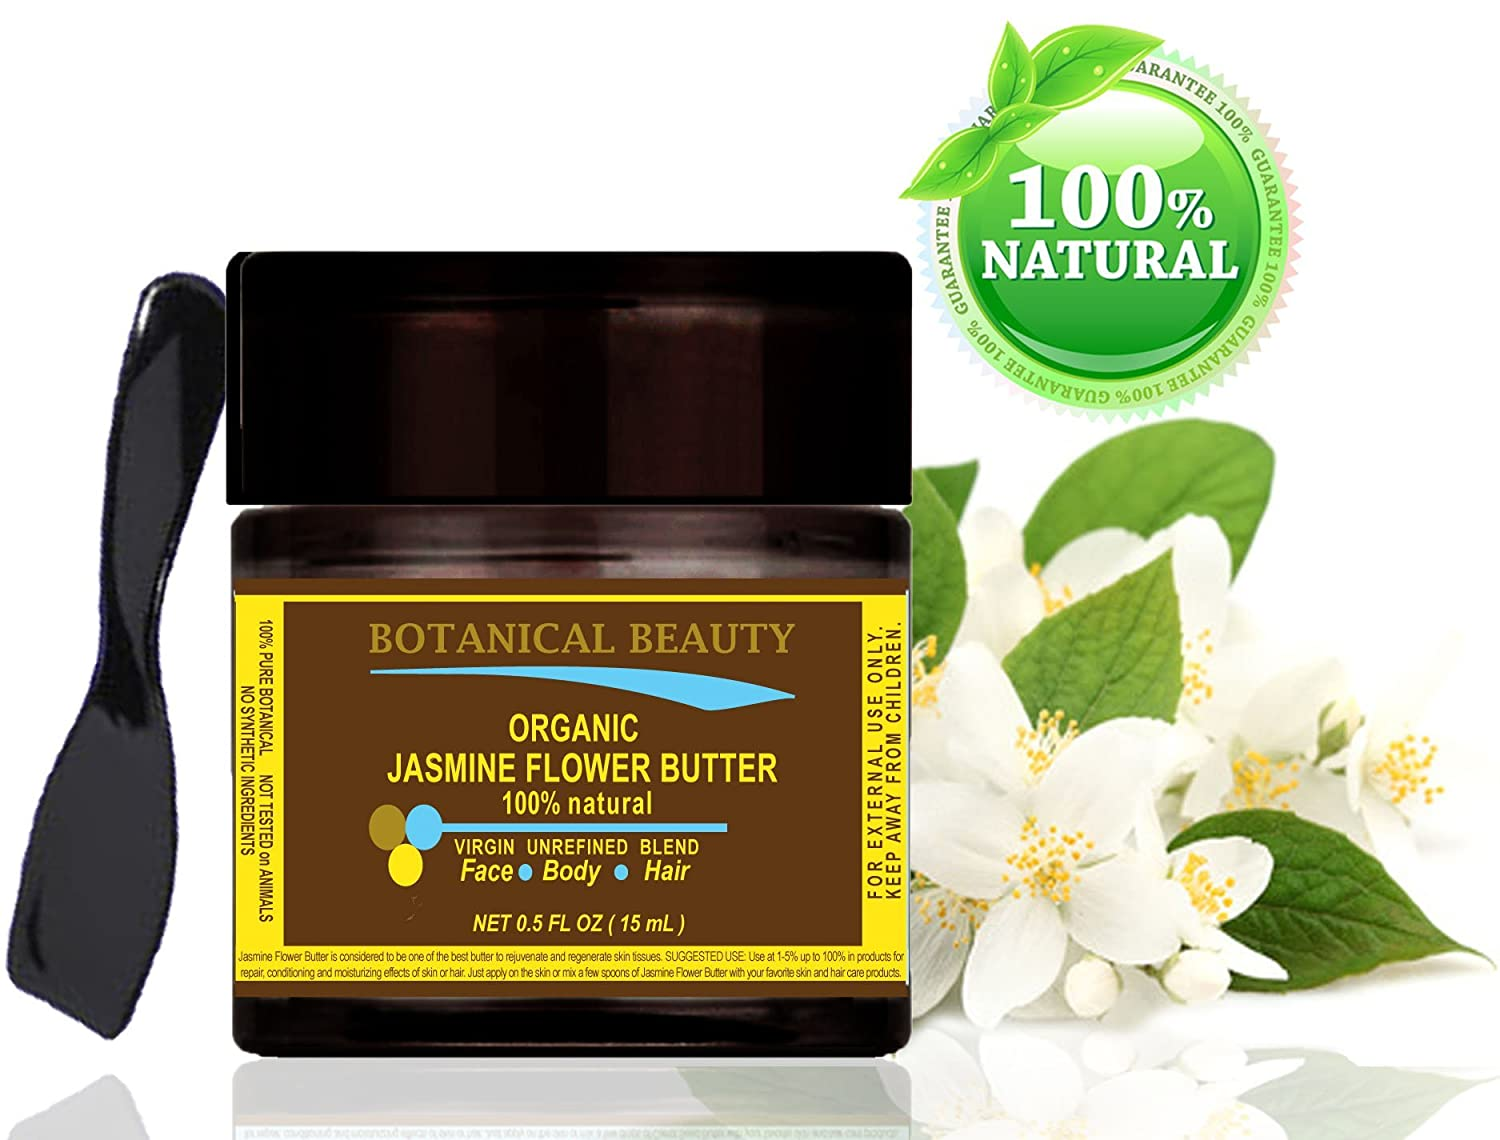 Amazon jasmine flower butter organic 100 natural 100 pure amazon jasmine flower butter organic 100 natural 100 pure botanicals virgin unrefined blend cold pressed 05 oz 15 ml izmirmasajfo